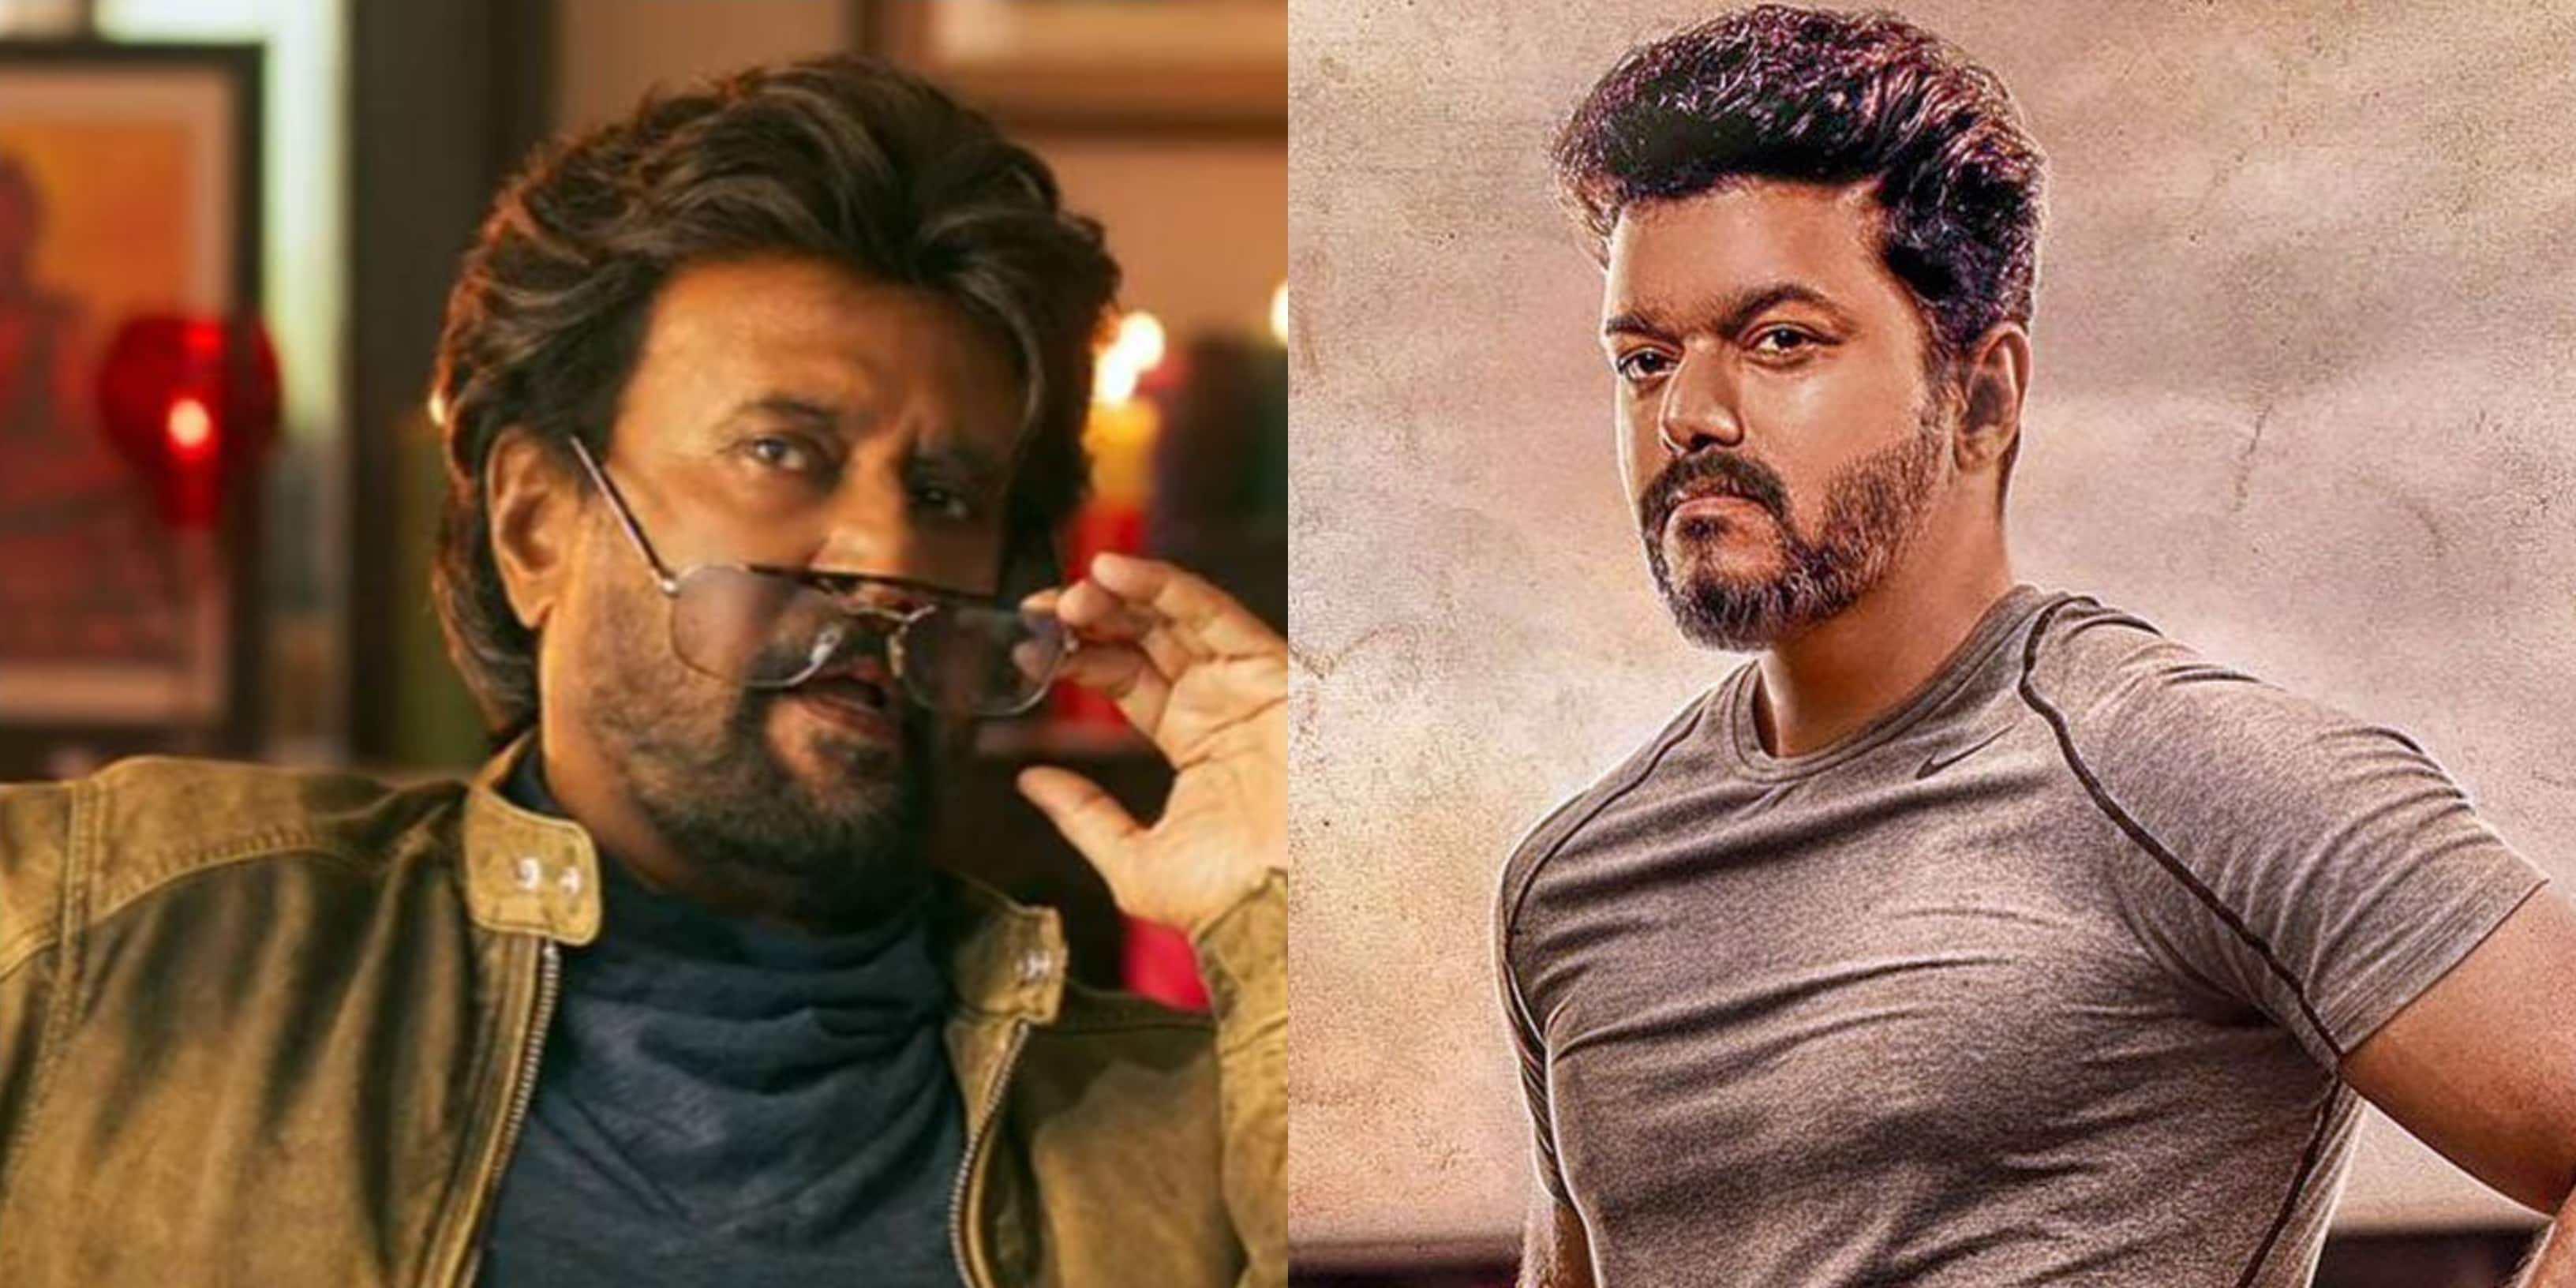 Vijay Dethrones Rajinikanth Becoming The Highest Paid Tamil Actor, Will Take Home Rs 100 Crores For Thalapathy 65?